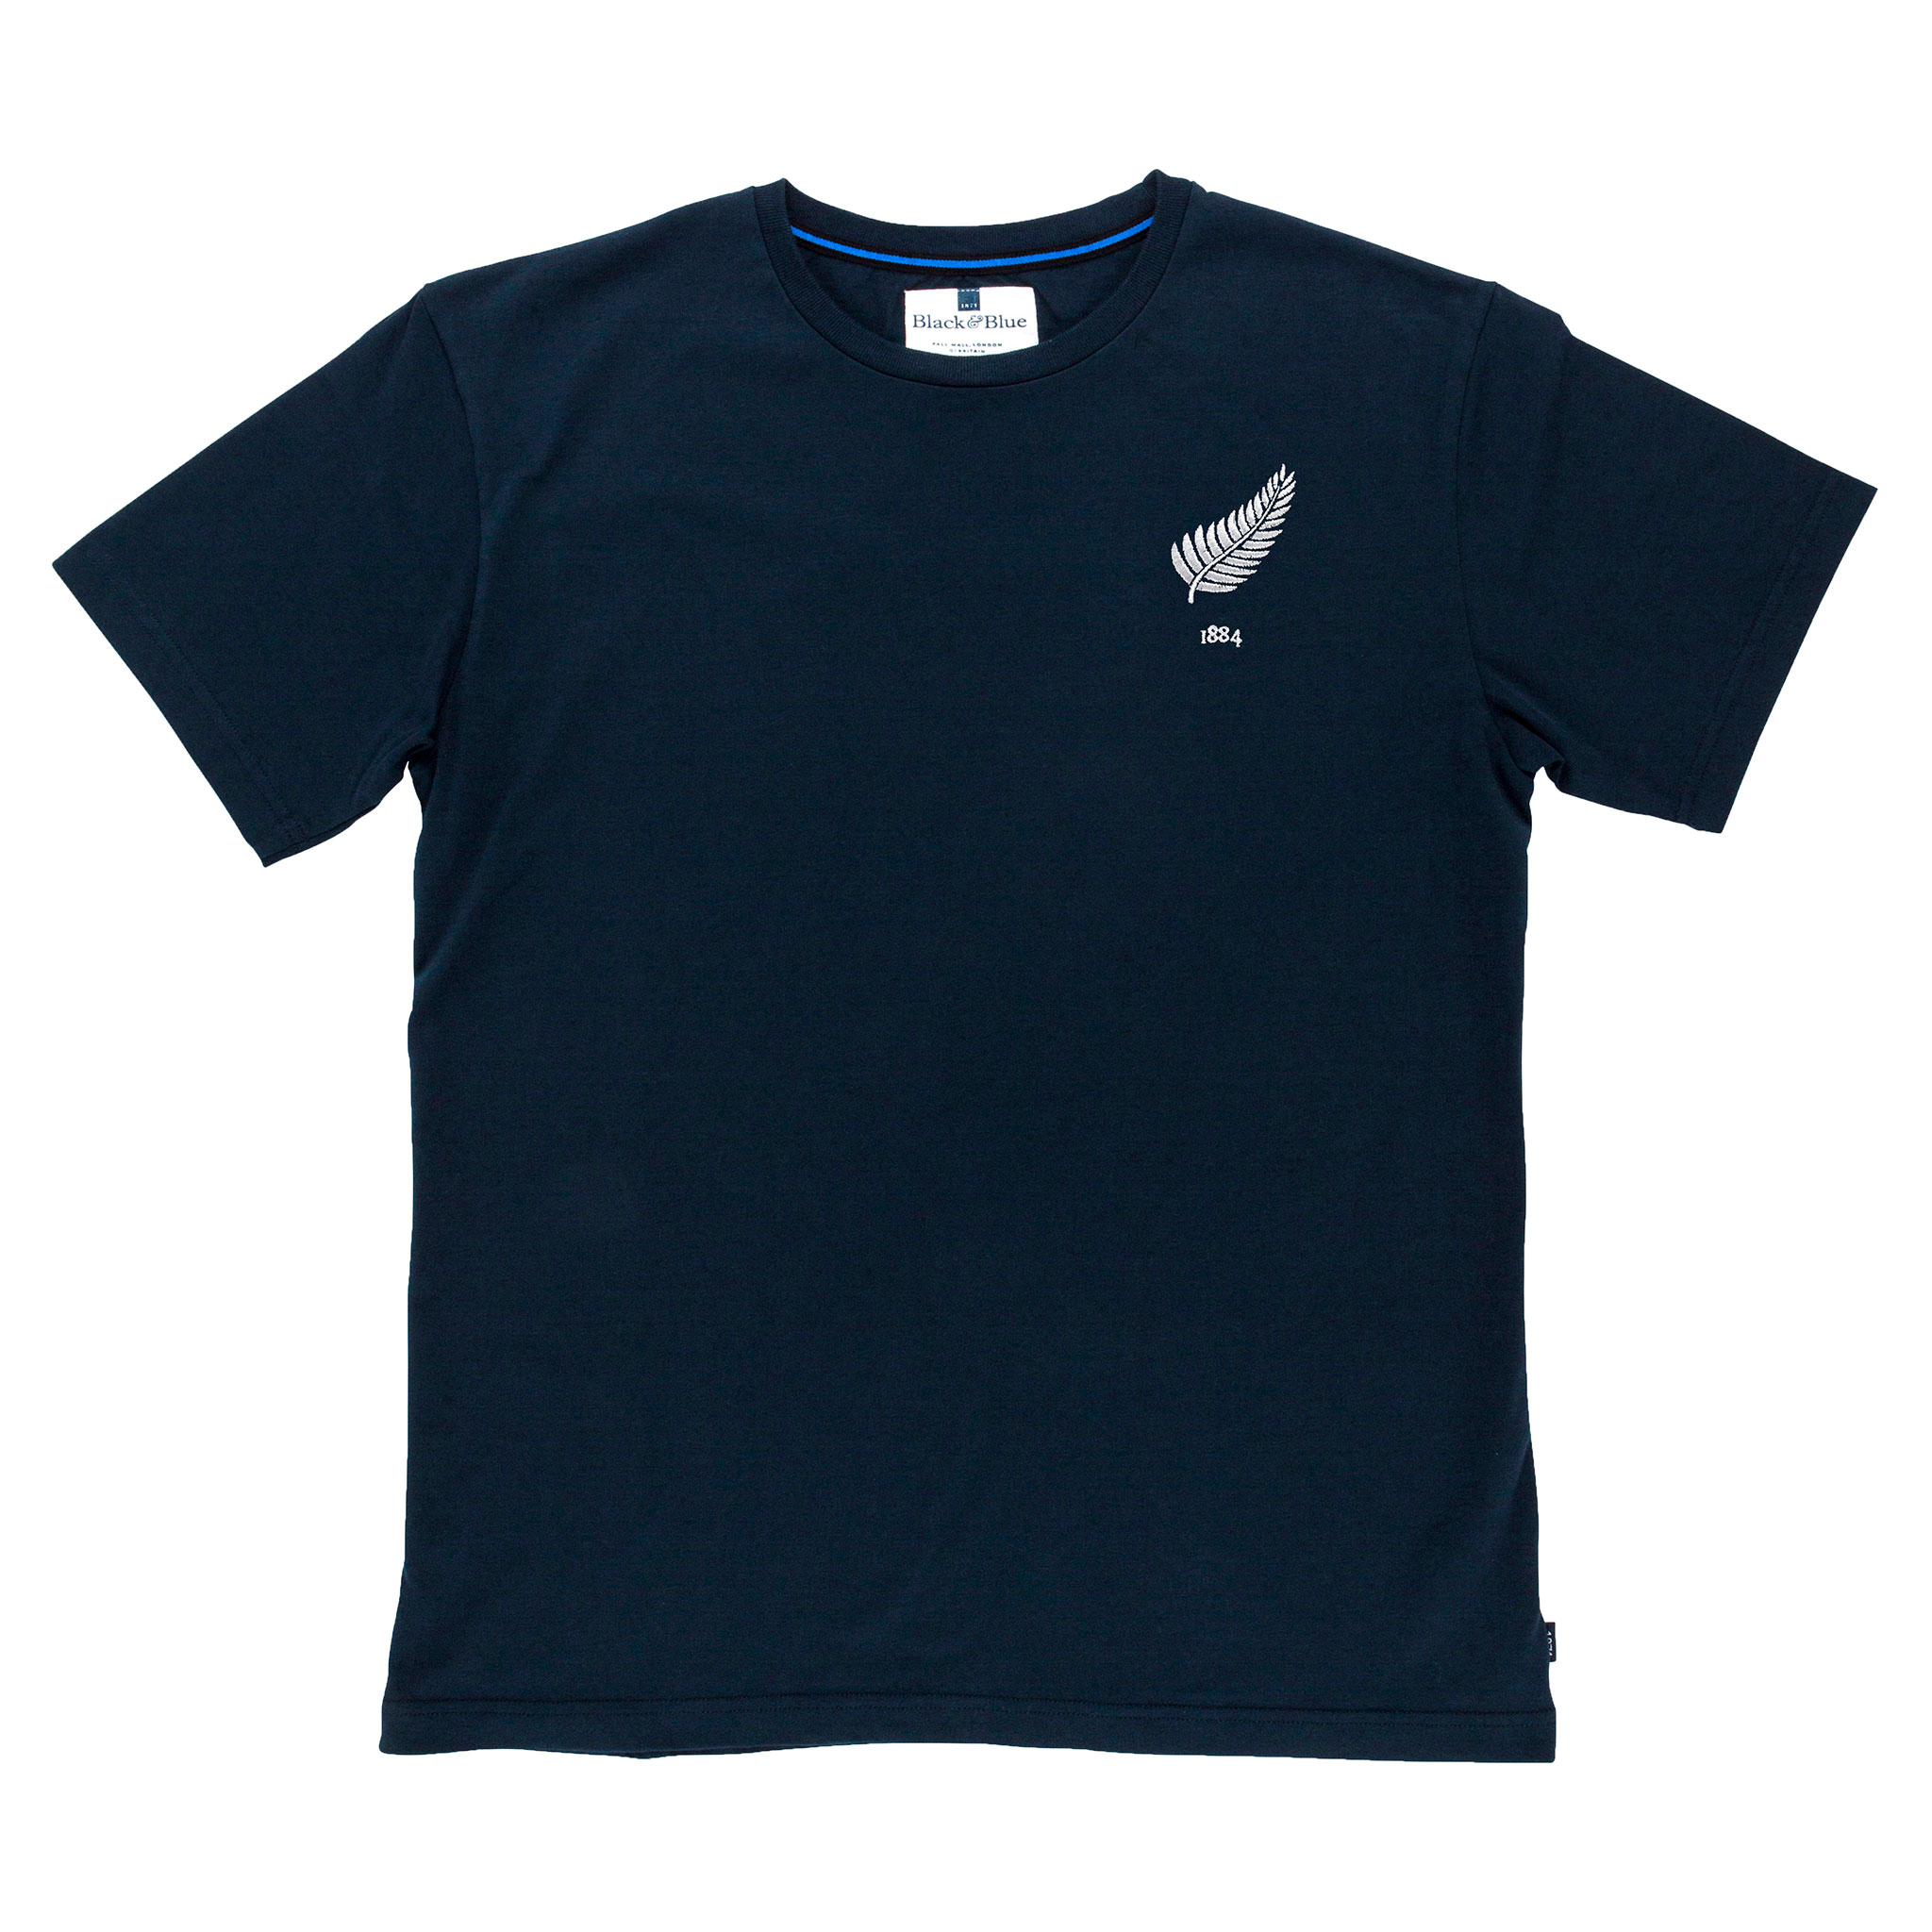 New Zealand 1884 Navy Tshirt_Front